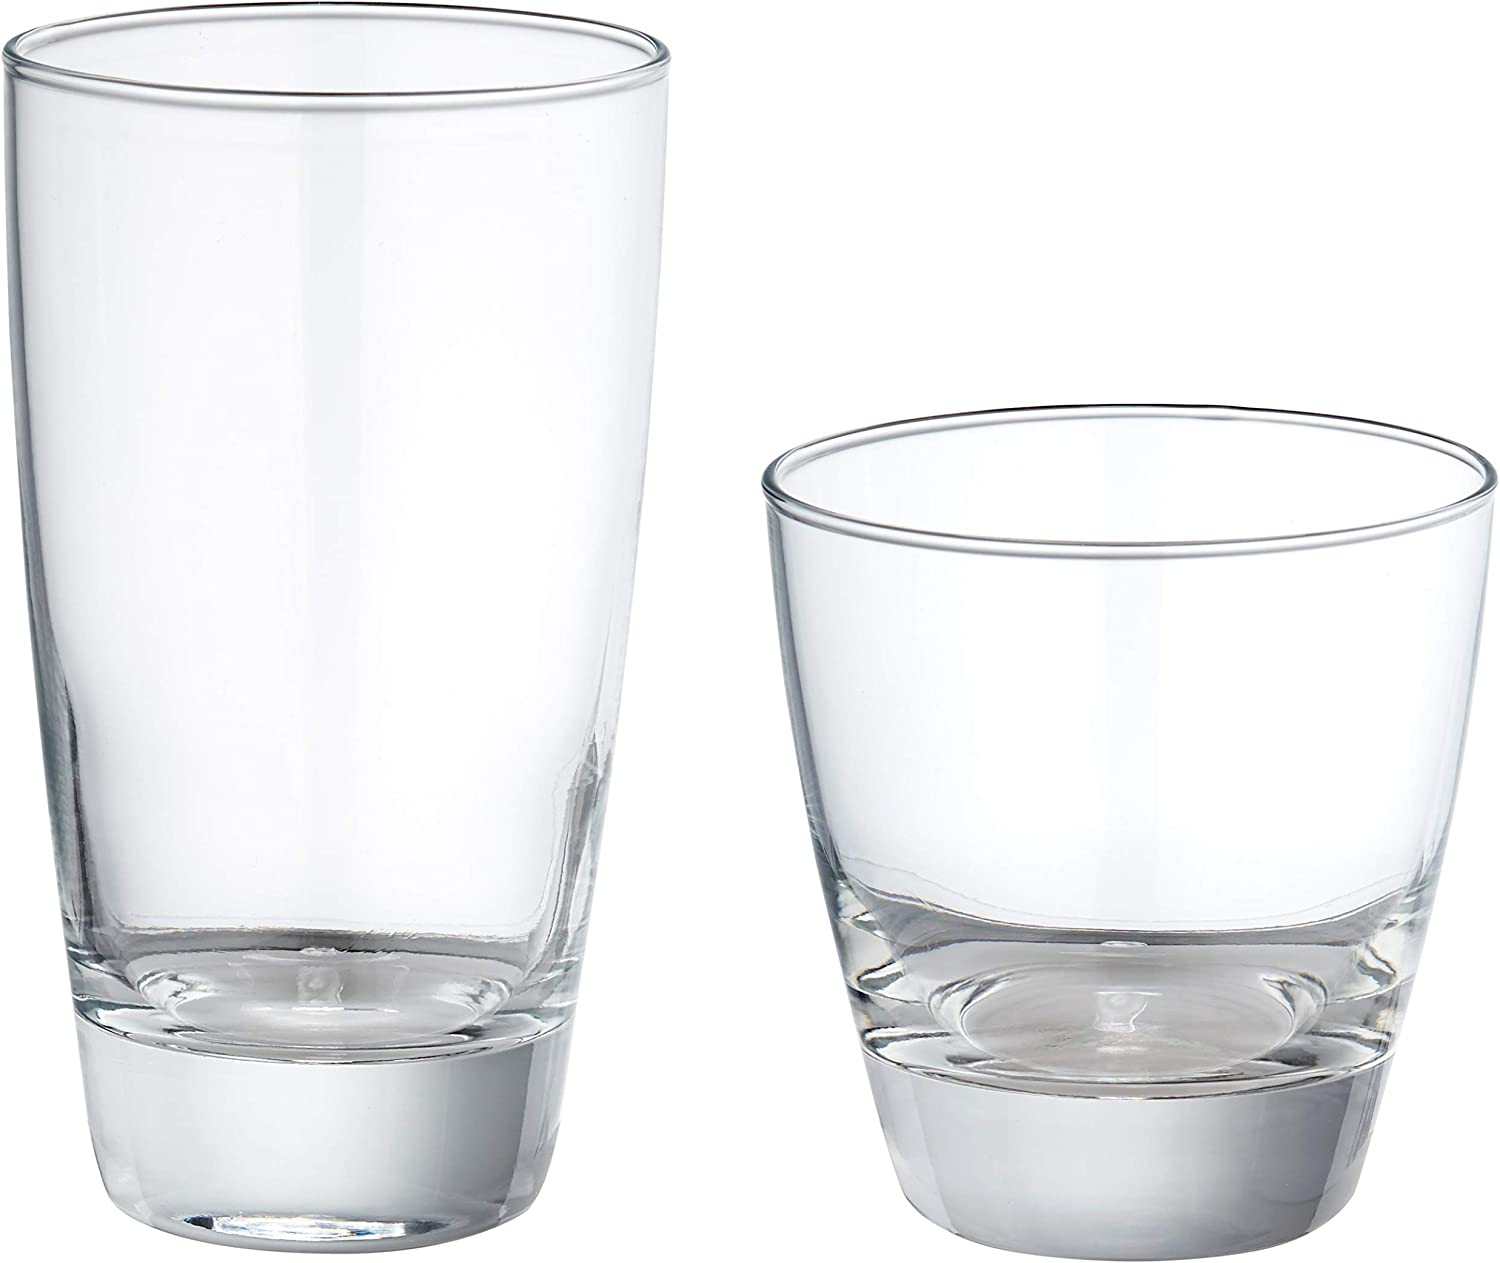 AmazonBasics Eastlake 16-Piece Old Fashioned and Coolers Glass Drinkware Set